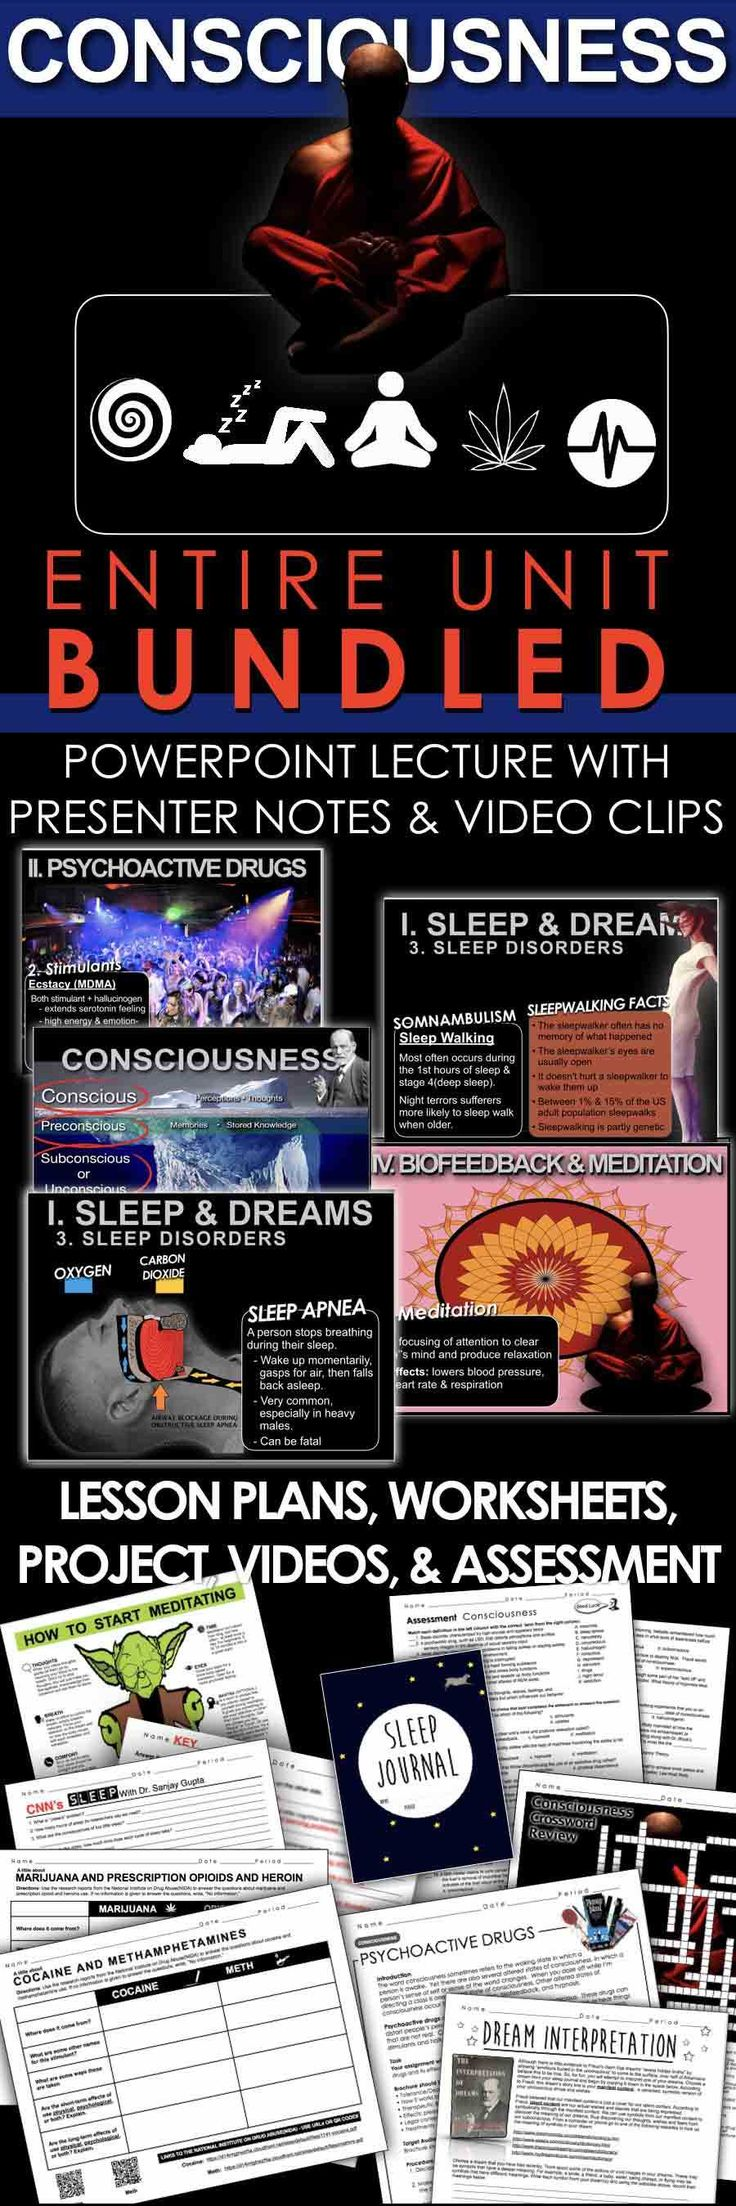 Altered States of Consciousness Unit Bundled includes Consciousness PowerPoints with Video Clips and presenter notes, worksheets/activities, warmups, projects, review crossword, videos and video guide, assessment and daily lesson plans.